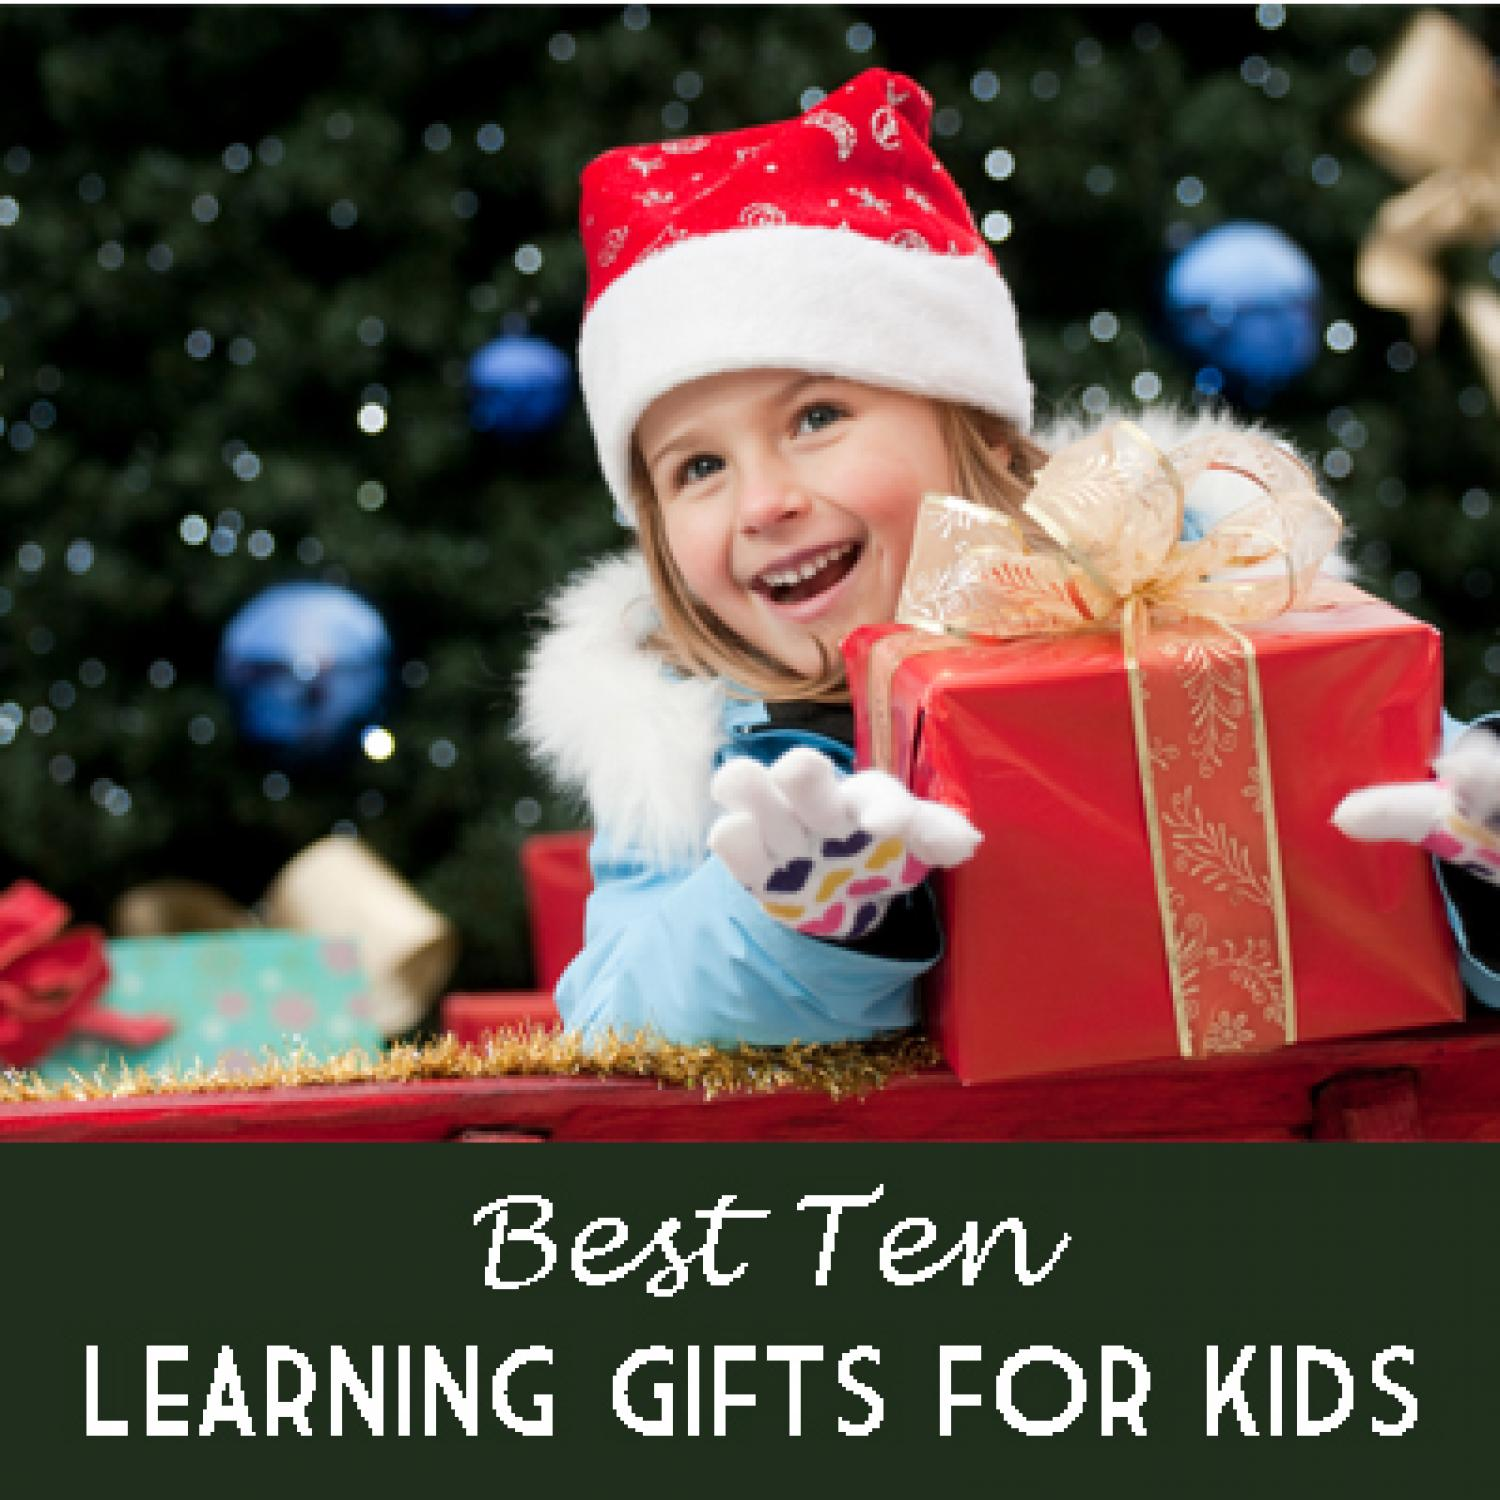 10 Best Learning Gifts for Kids | Parenting